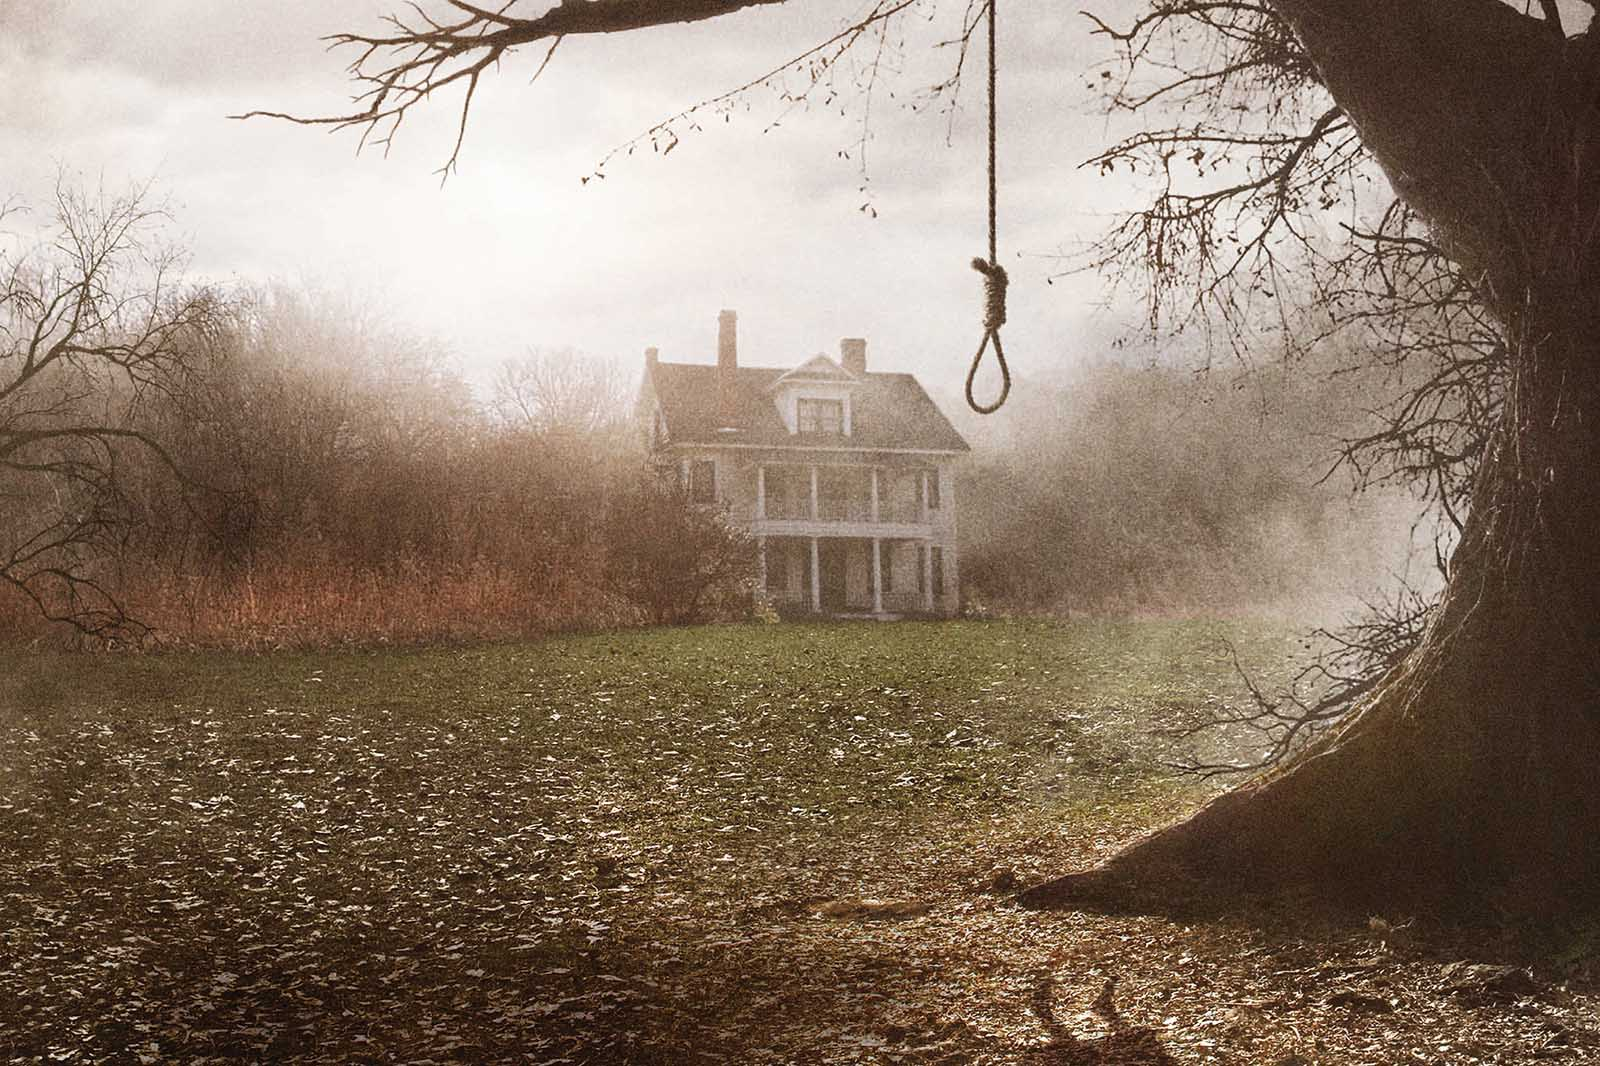 'The Conjuring' series has been on the top of the box office for years, but all the movies in the series draw inspiration from the Warrens.